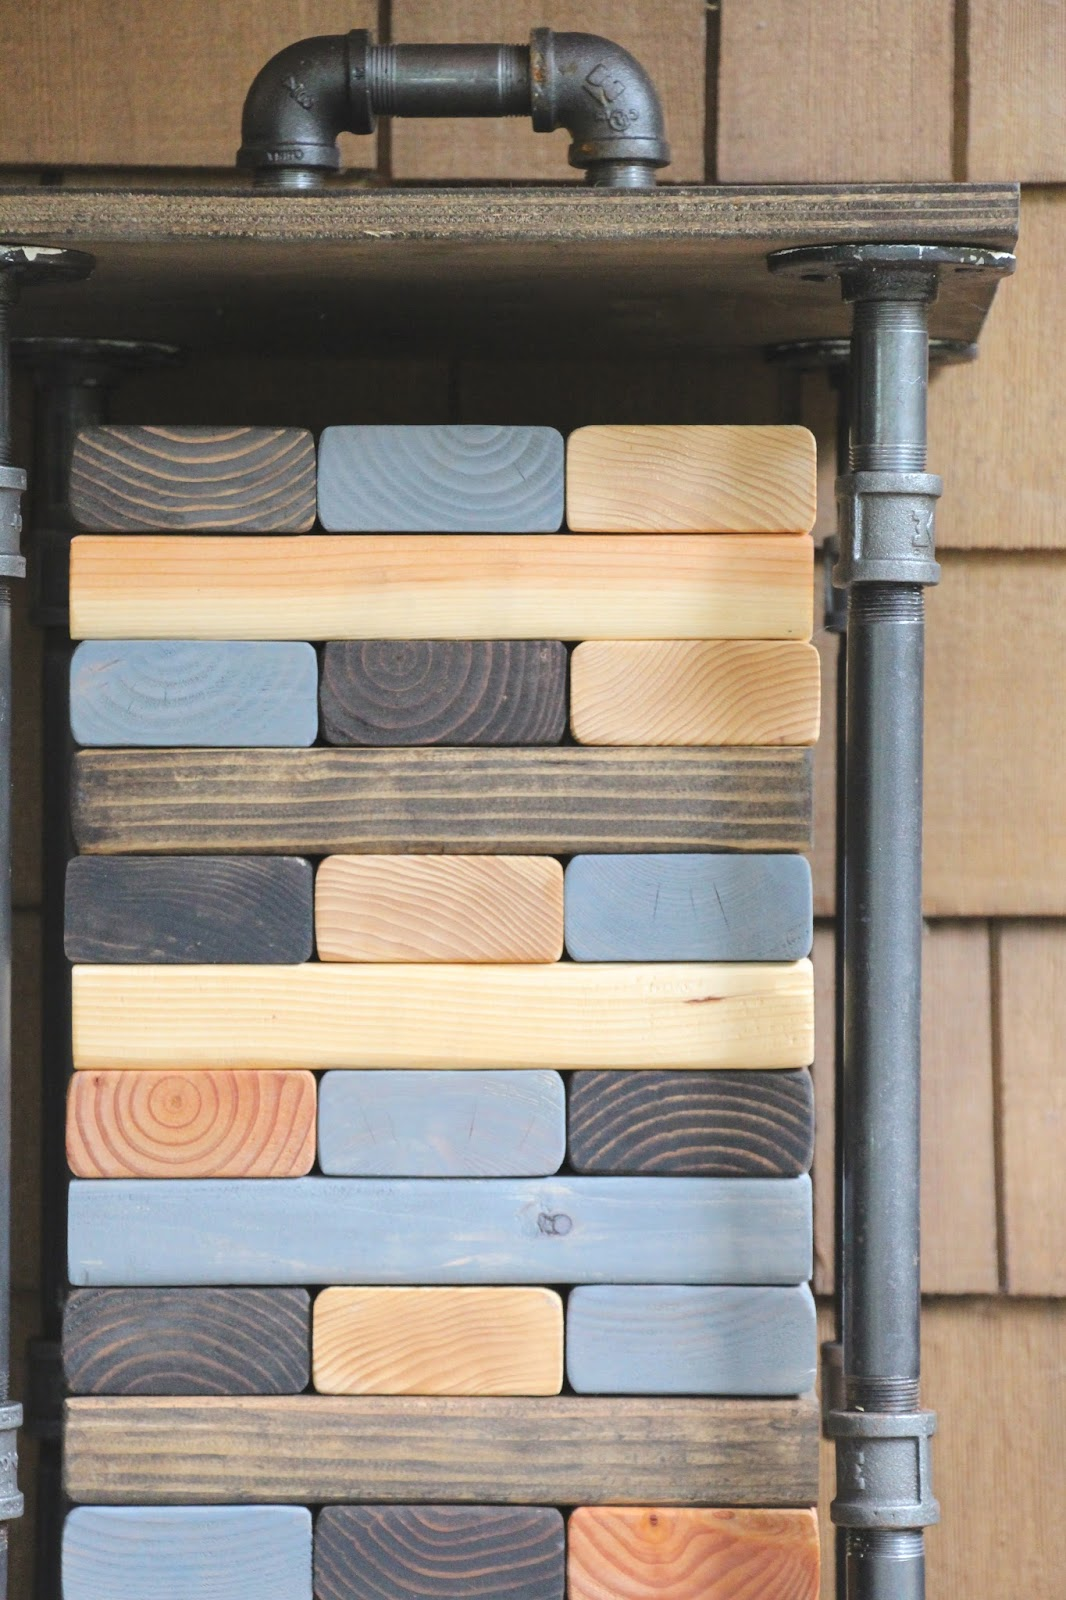 Merveilleux My Sweet Savannah: ~giant Jenga Diy With Industrial Storage~{thrifty  Thursday}